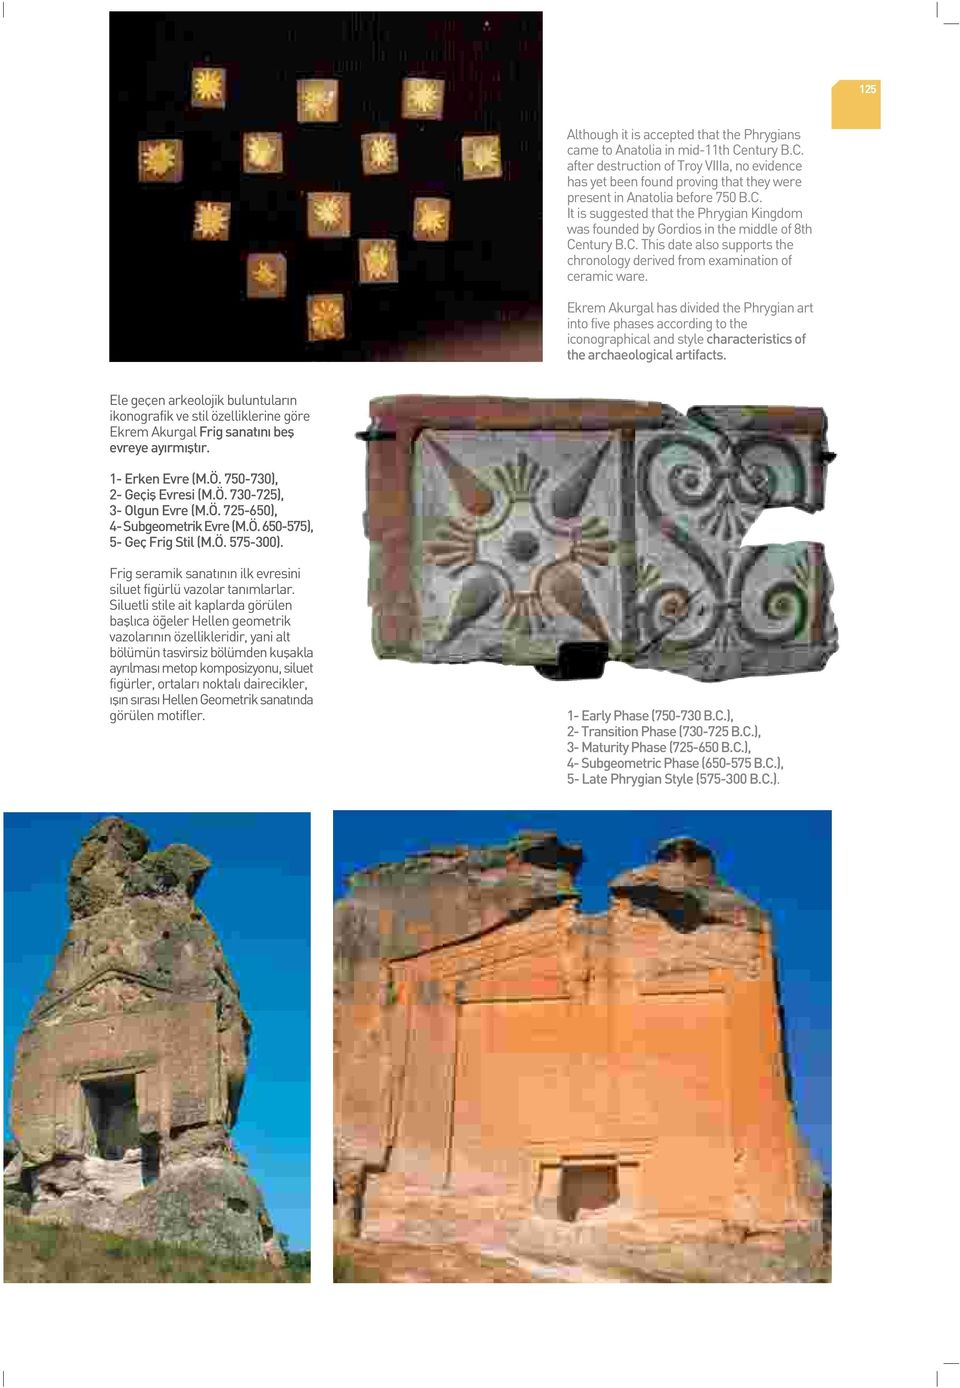 Ekrem Akurgal has divided the Phrygian art into five phases according to the iconographical and style characteristics of the archaeological artifacts.